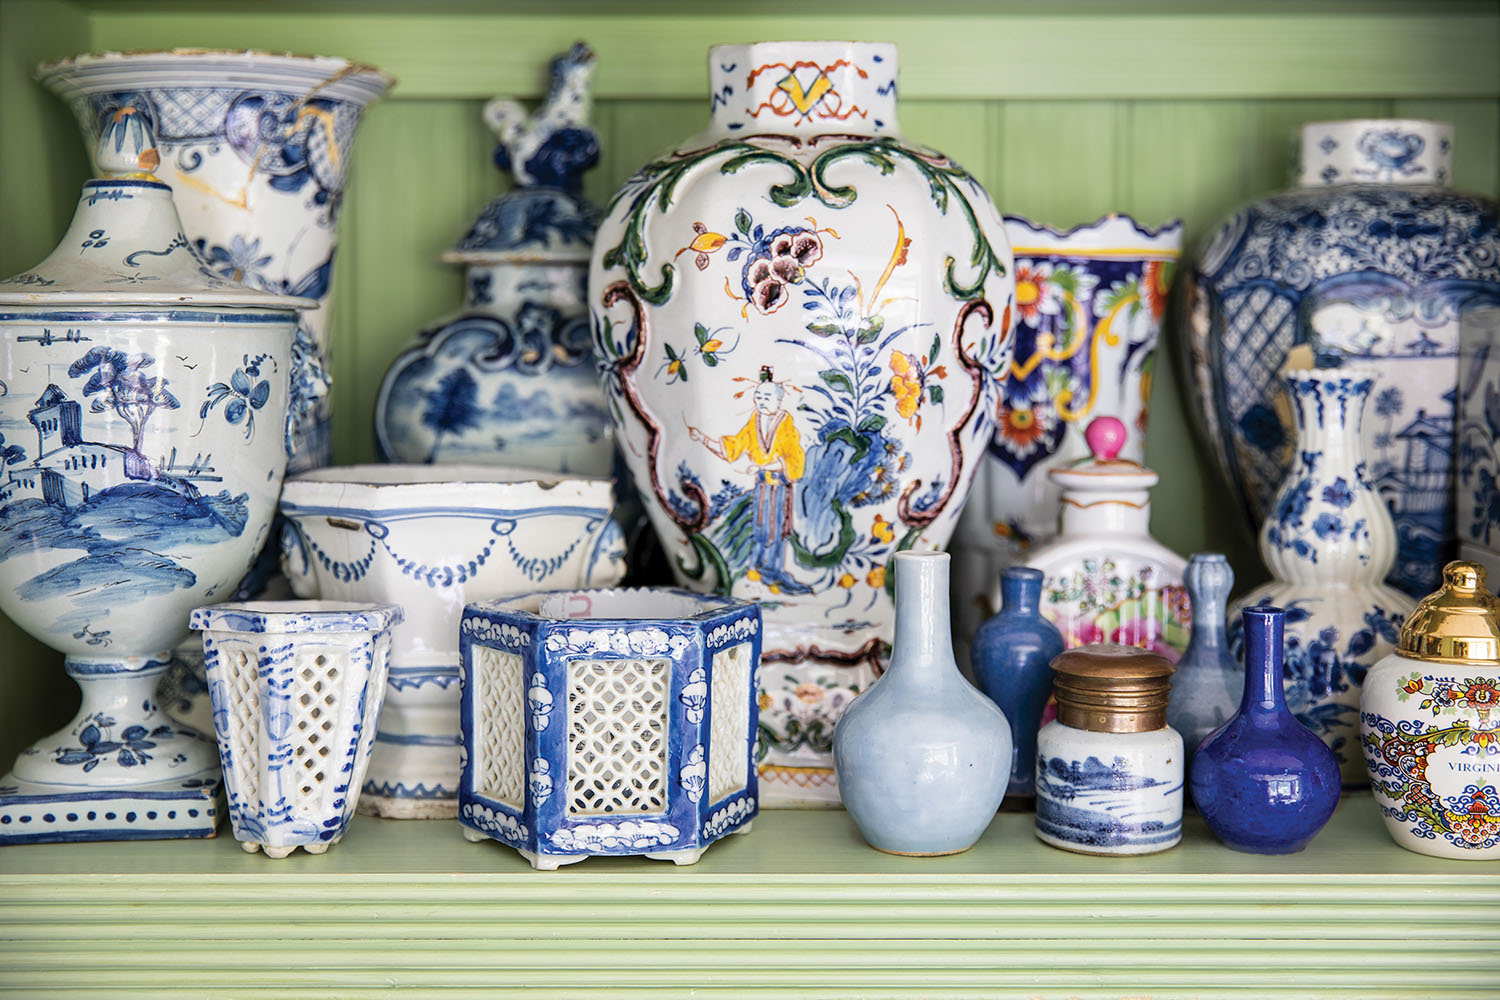 Charlotte Moss's collection of vases